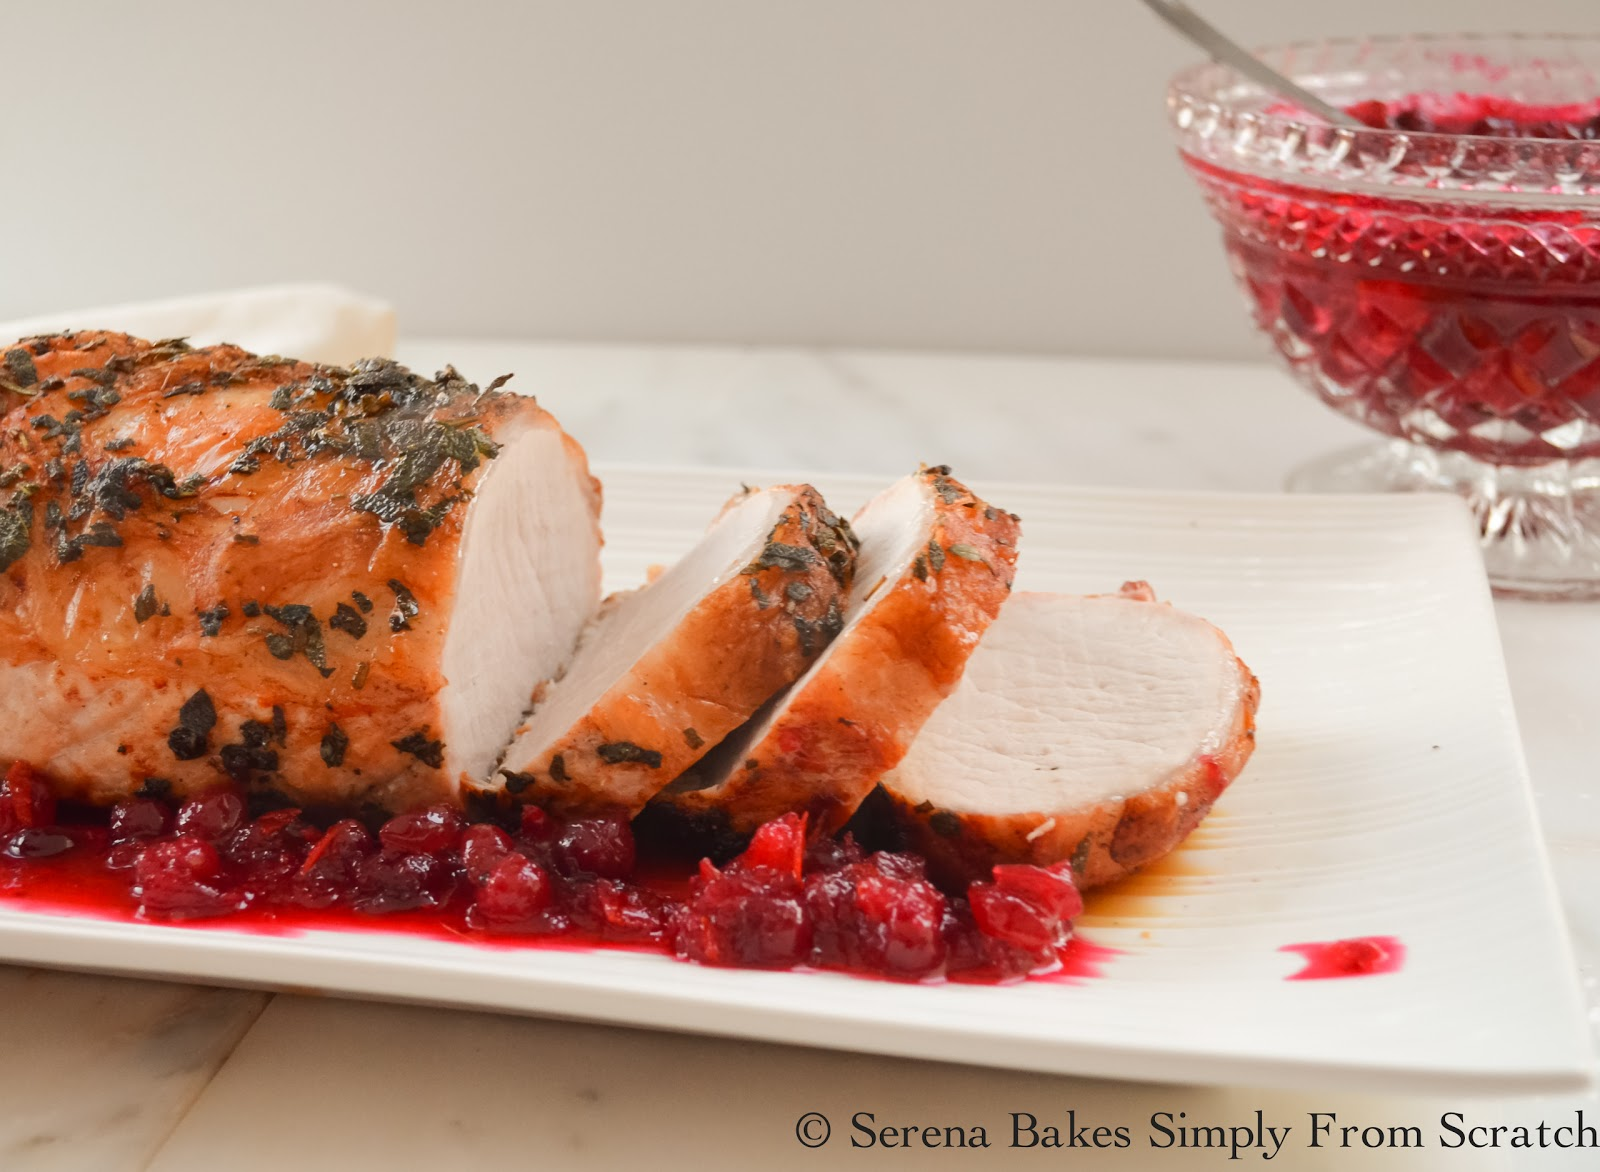 Rosemary Sage Pork Loin Roast is easy to make and perfect for Christmas! serenabakessimplyfromscratch.com